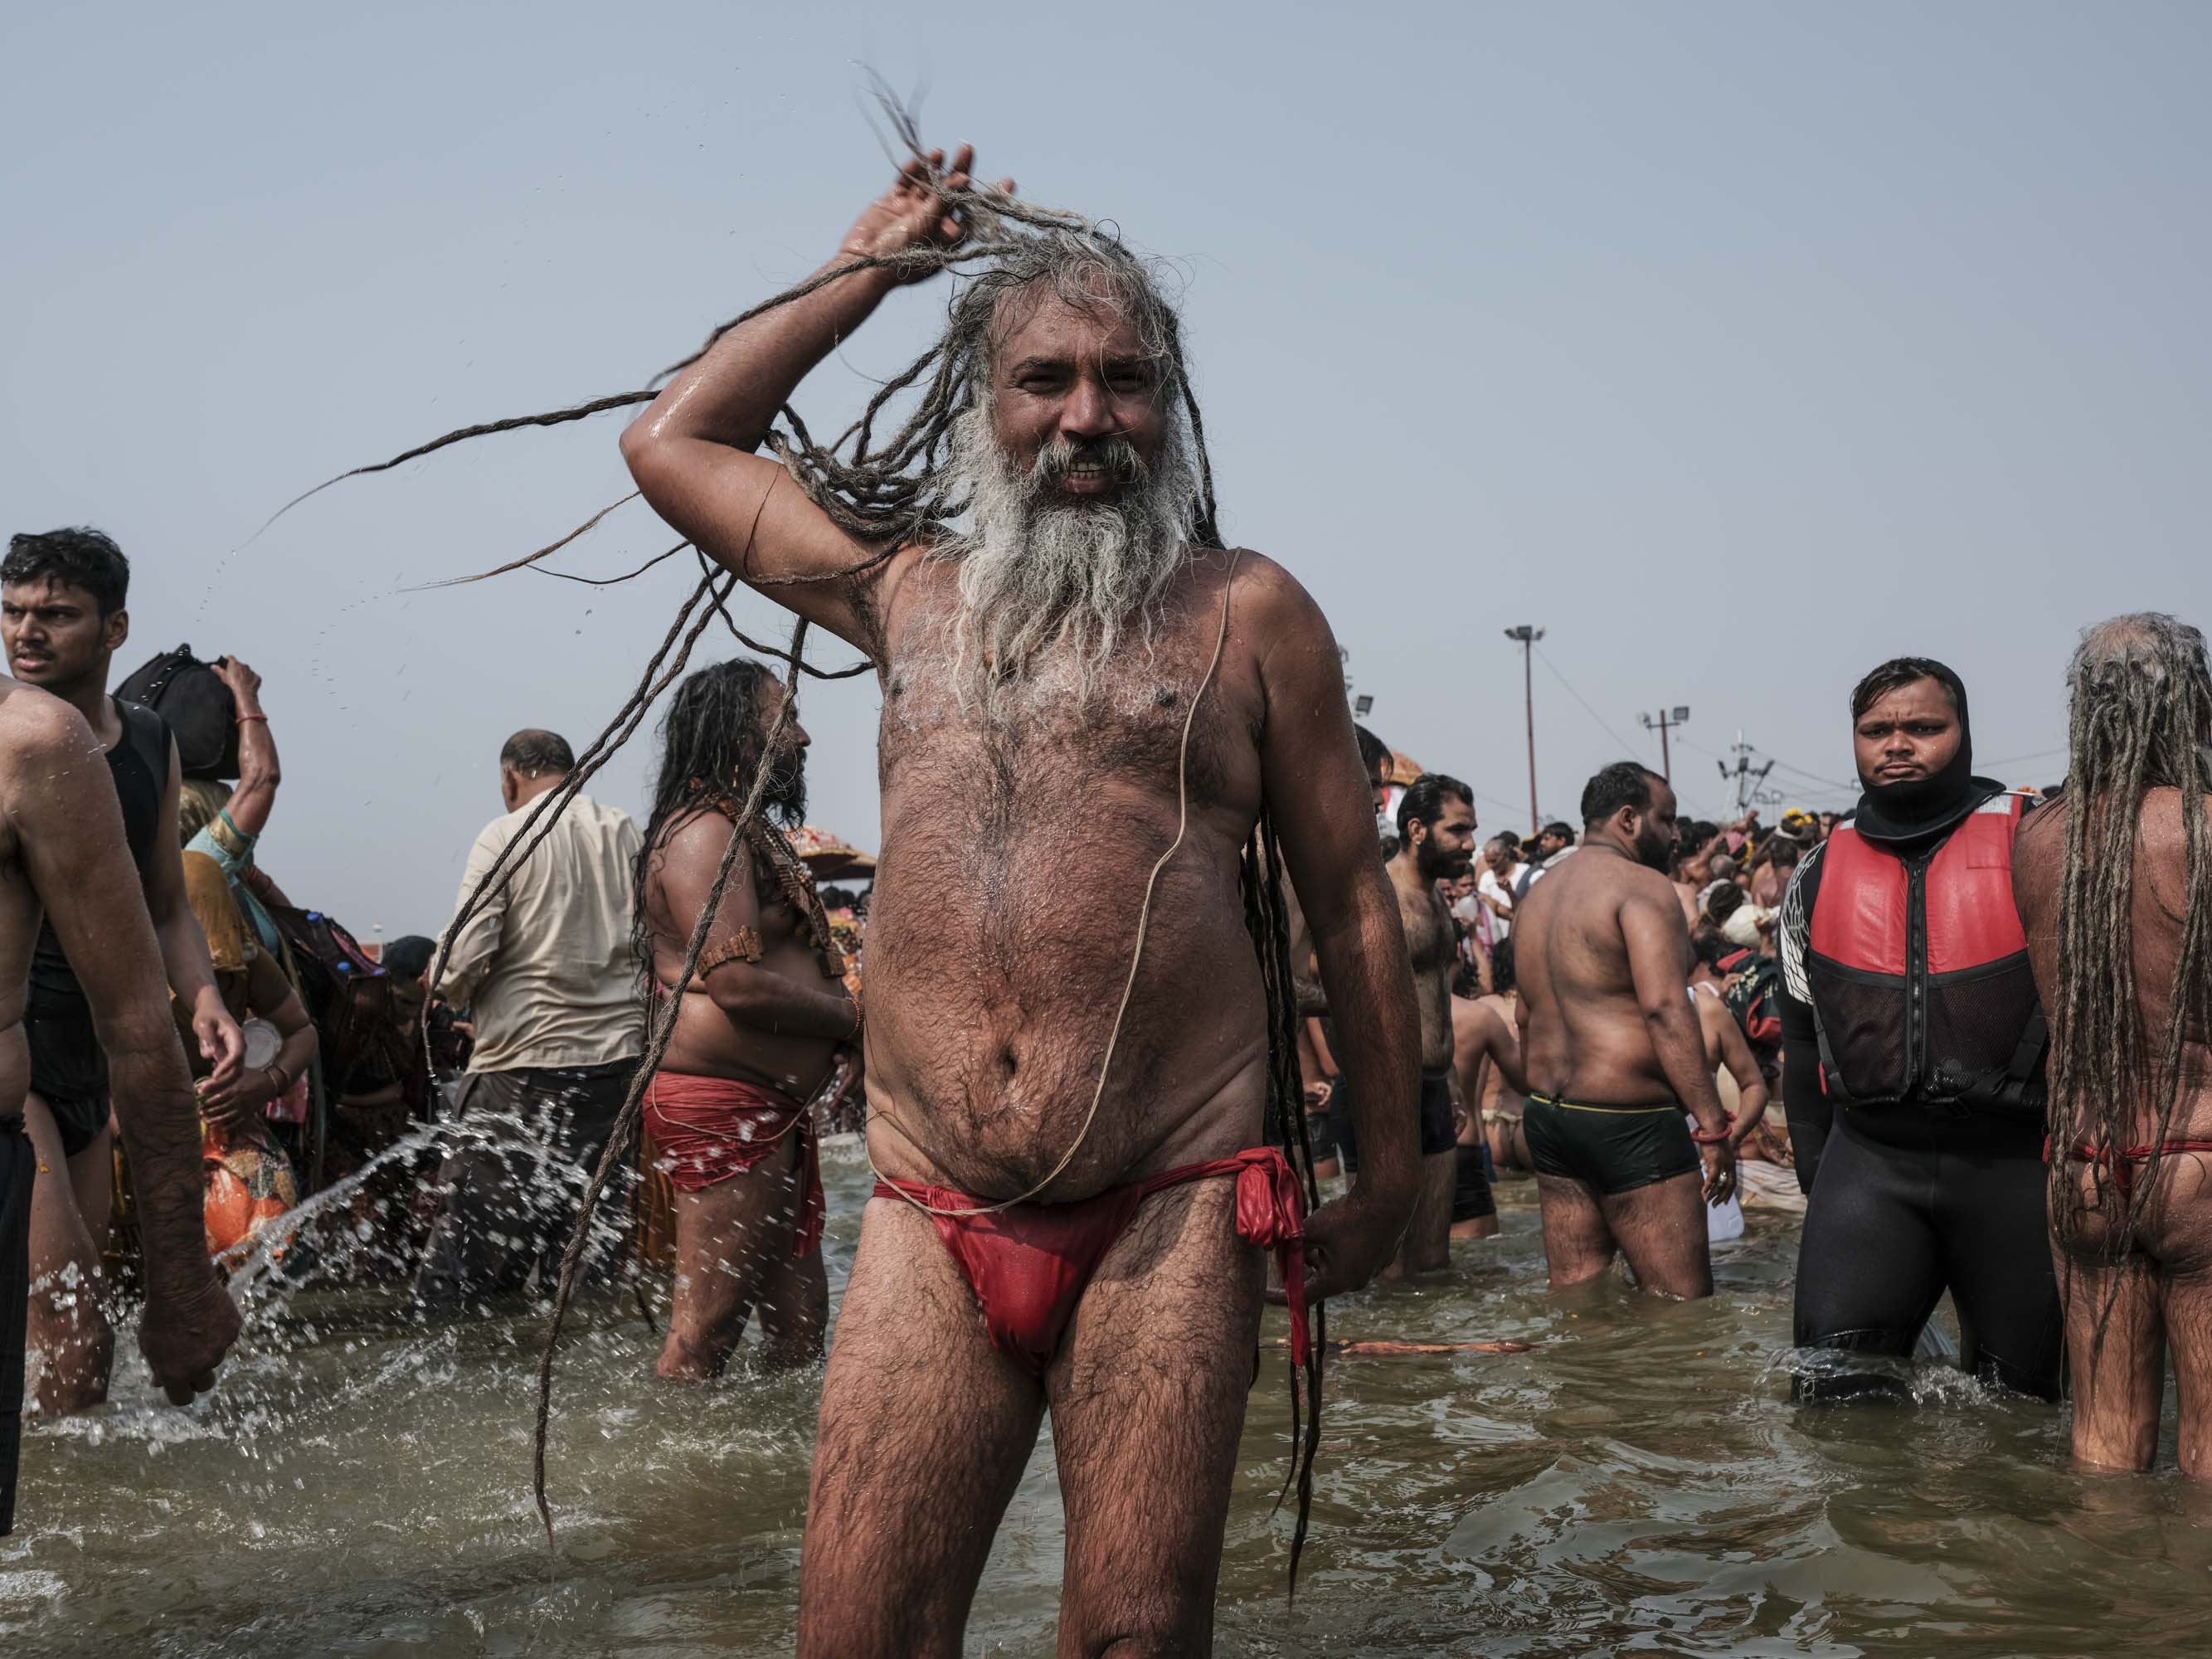 baba long hair in the water pilgrims Kumbh mela 2019 India Allahabad Prayagraj Ardh hindu religious Festival event rivers photographer jose jeuland photography